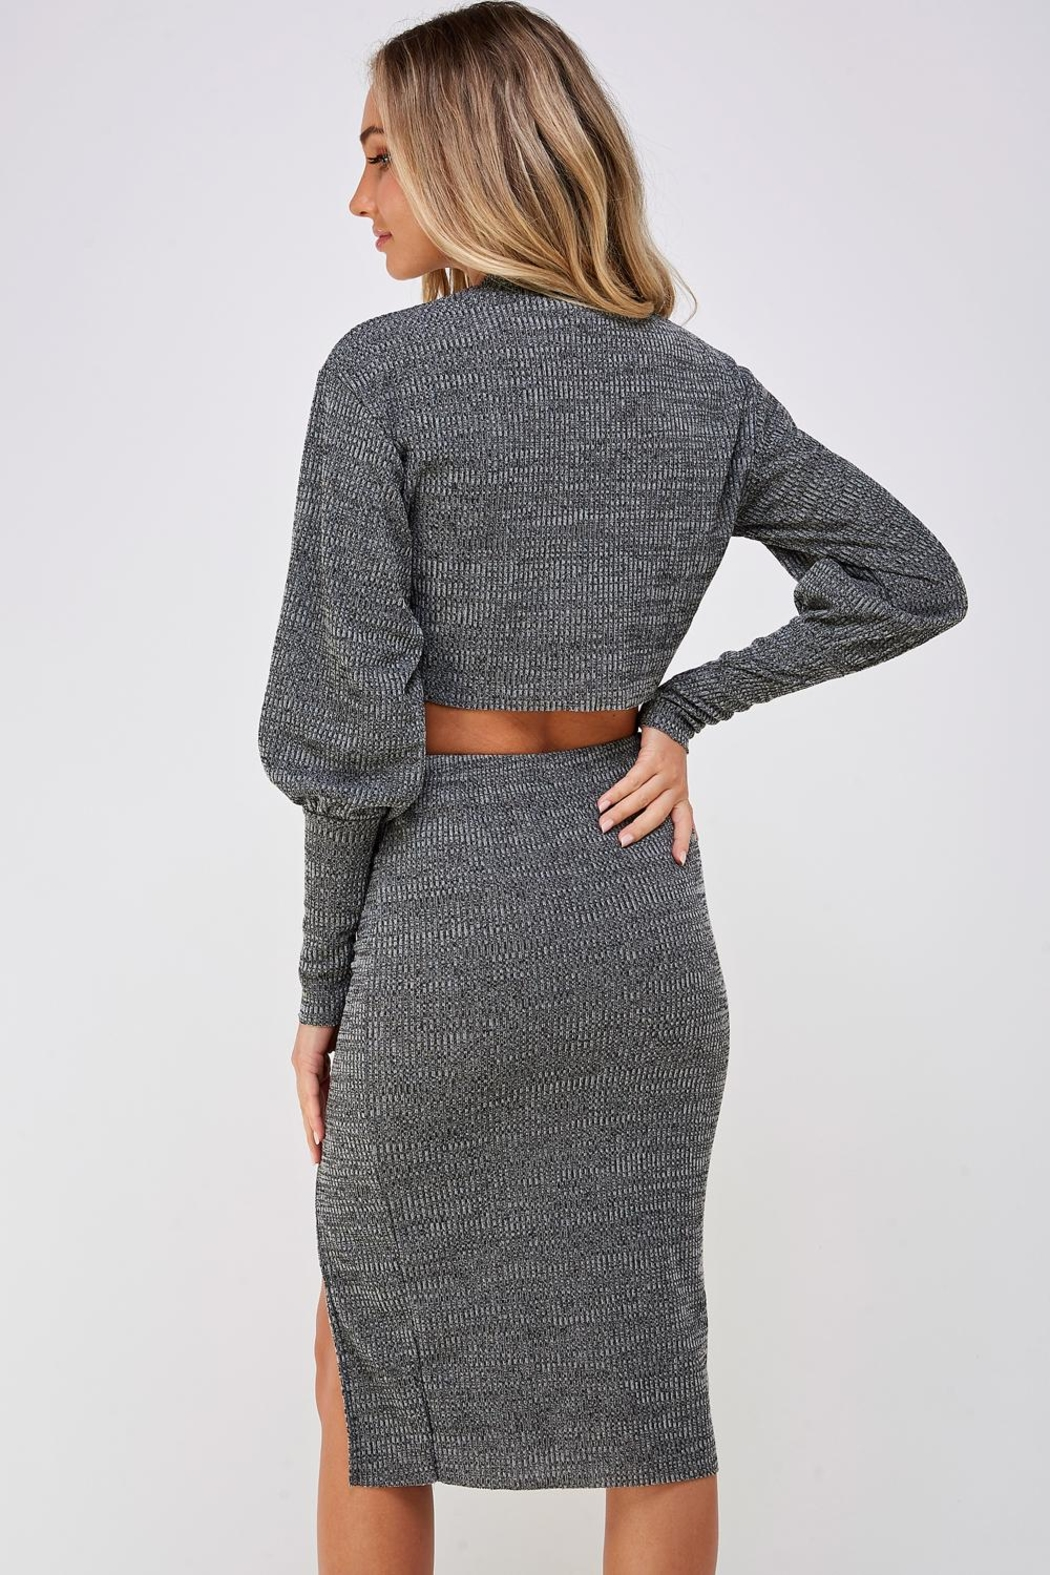 hers and mine Grey Skirt Set - Back Cropped Image